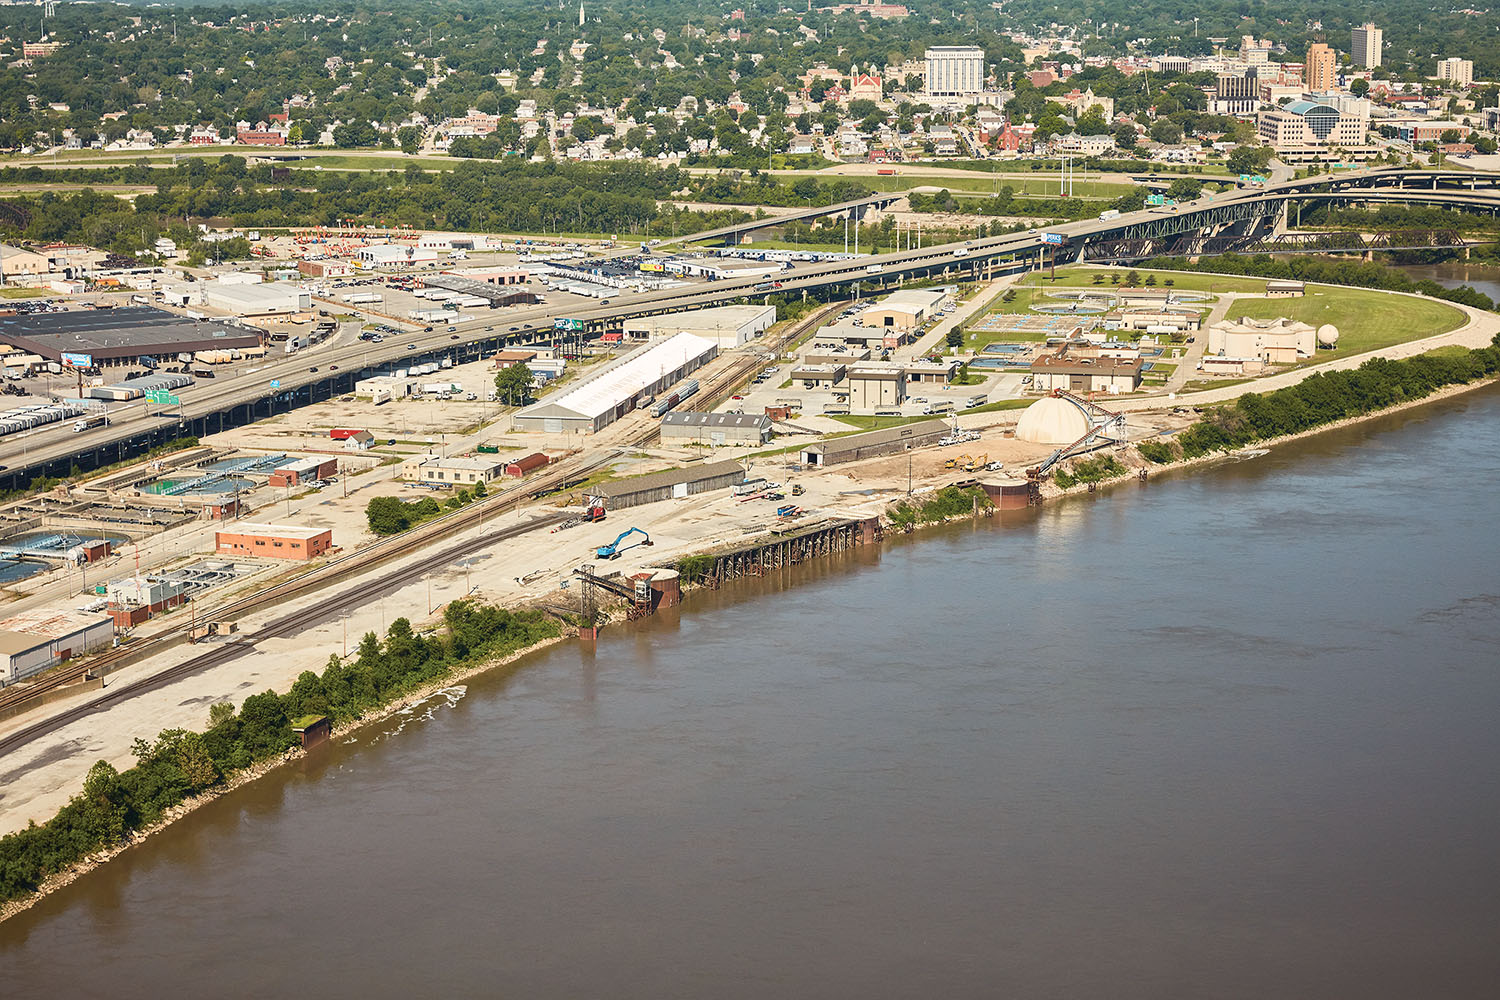 Port KC is expected to ship 189 percent more tonnage this year compared to 2017.